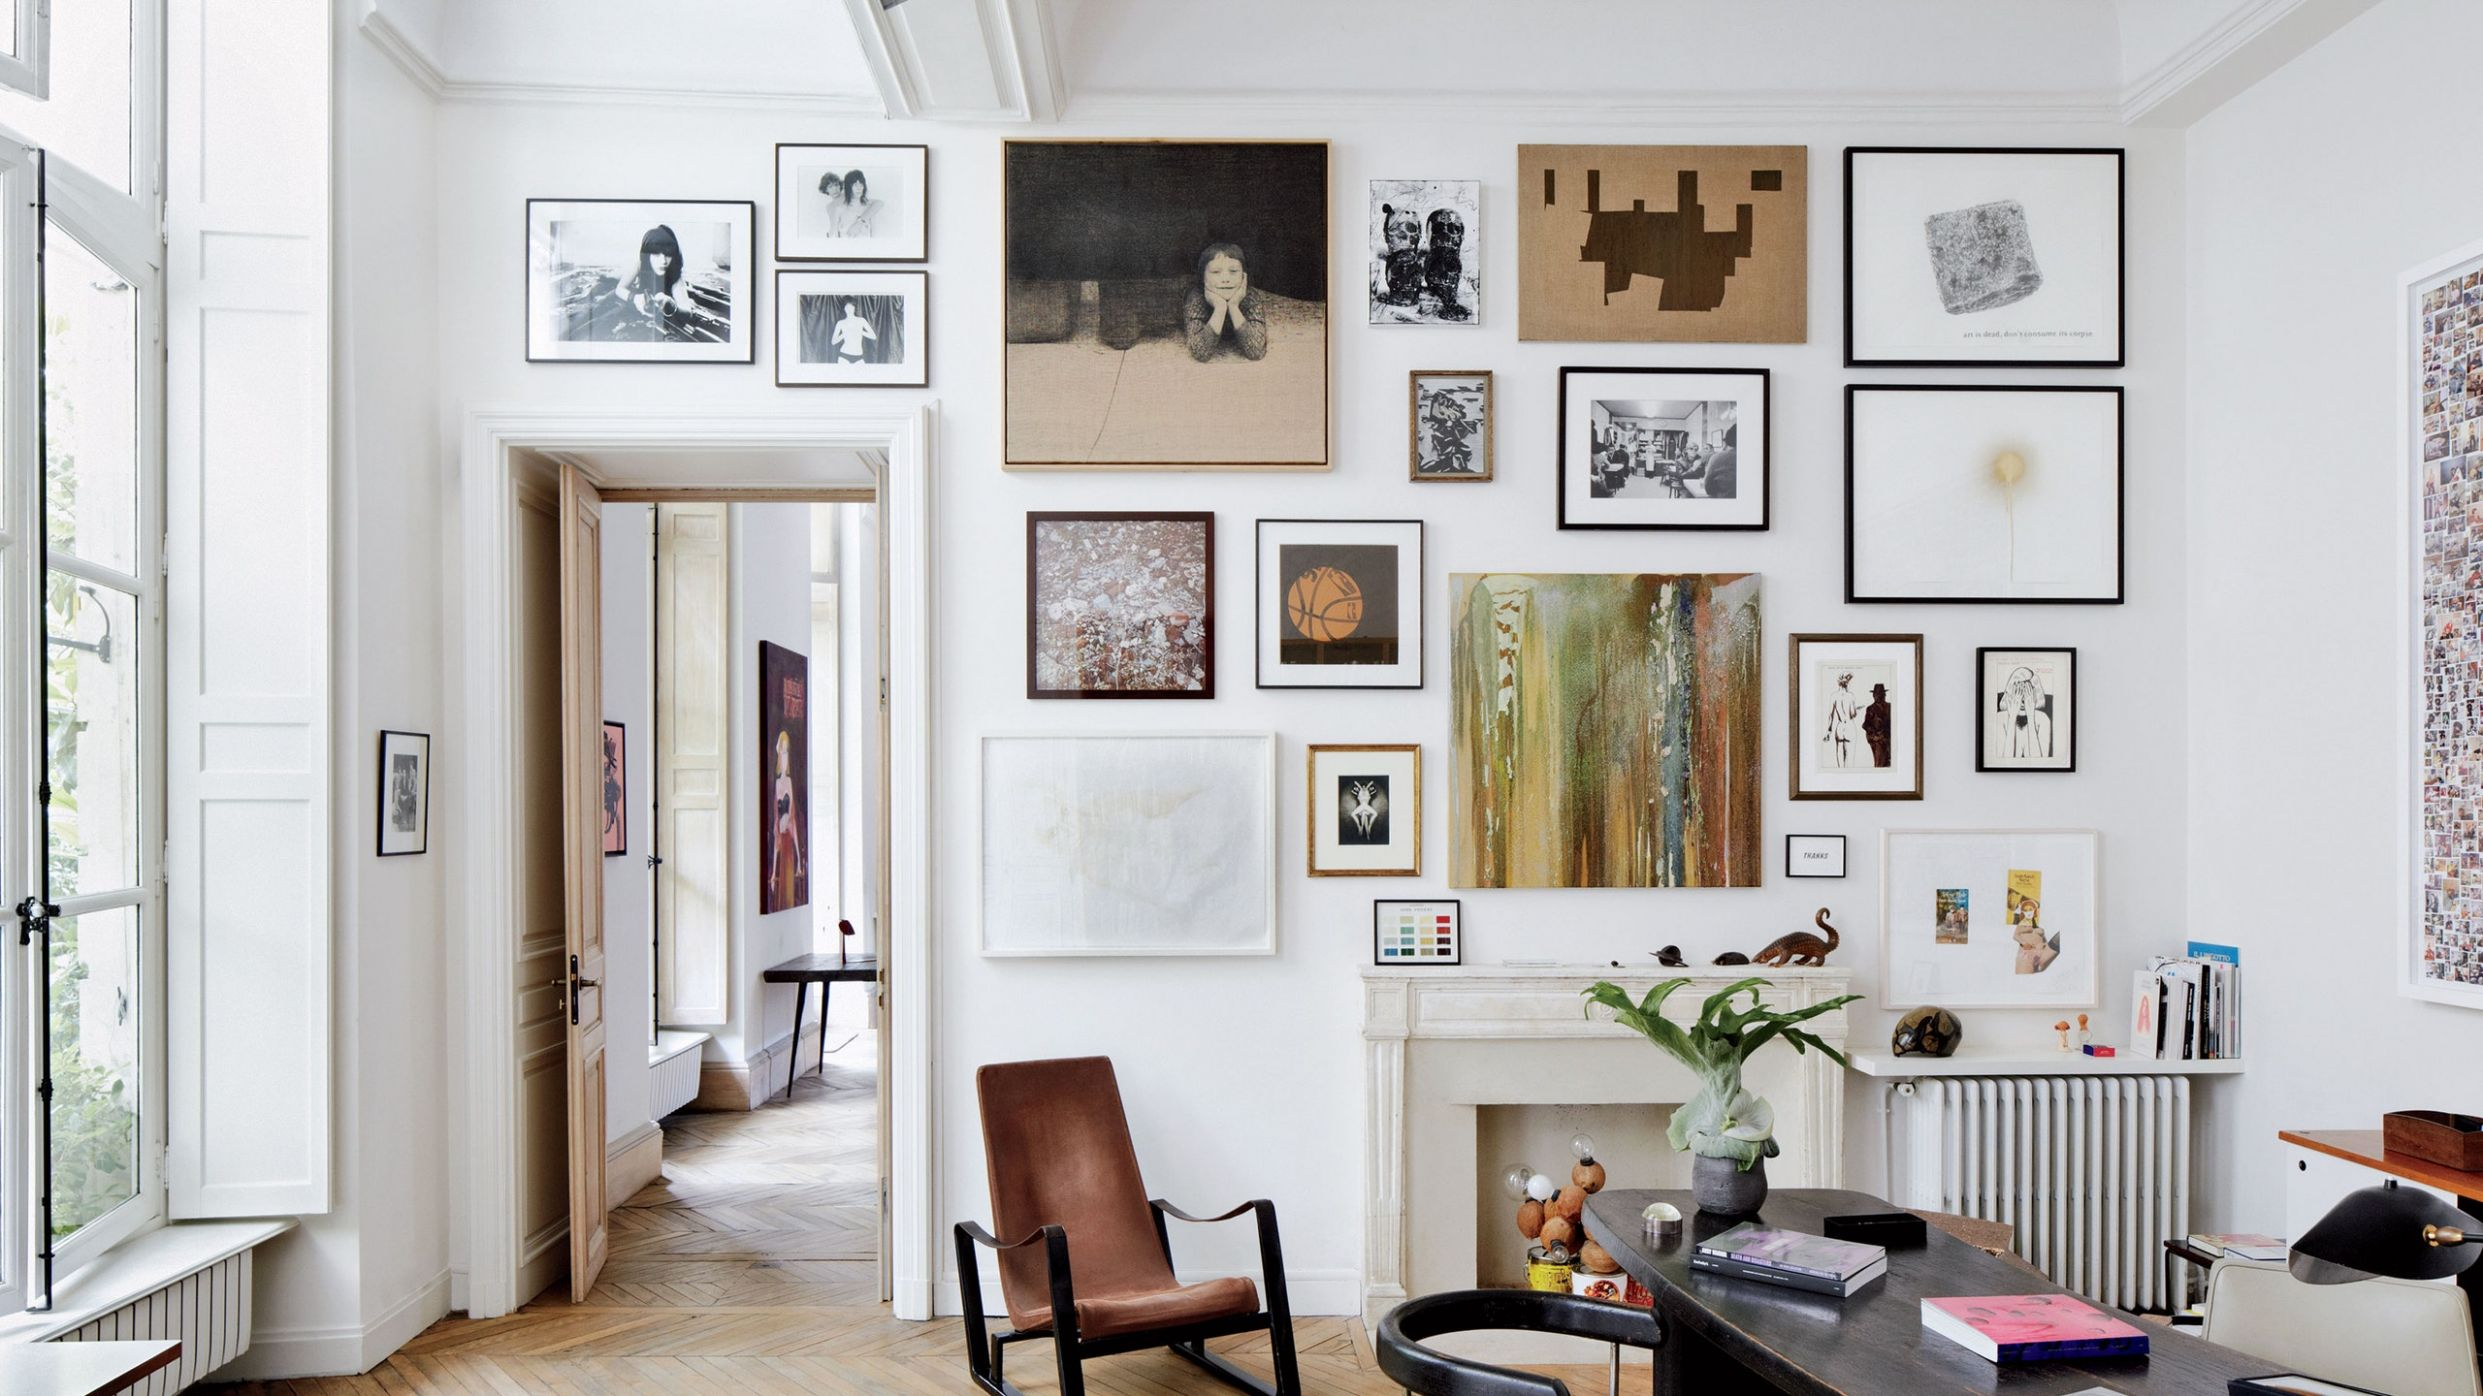 12 Wall Decor Ideas to Refresh Your Space | Architectural Digest - dining room wall art ideas etsy